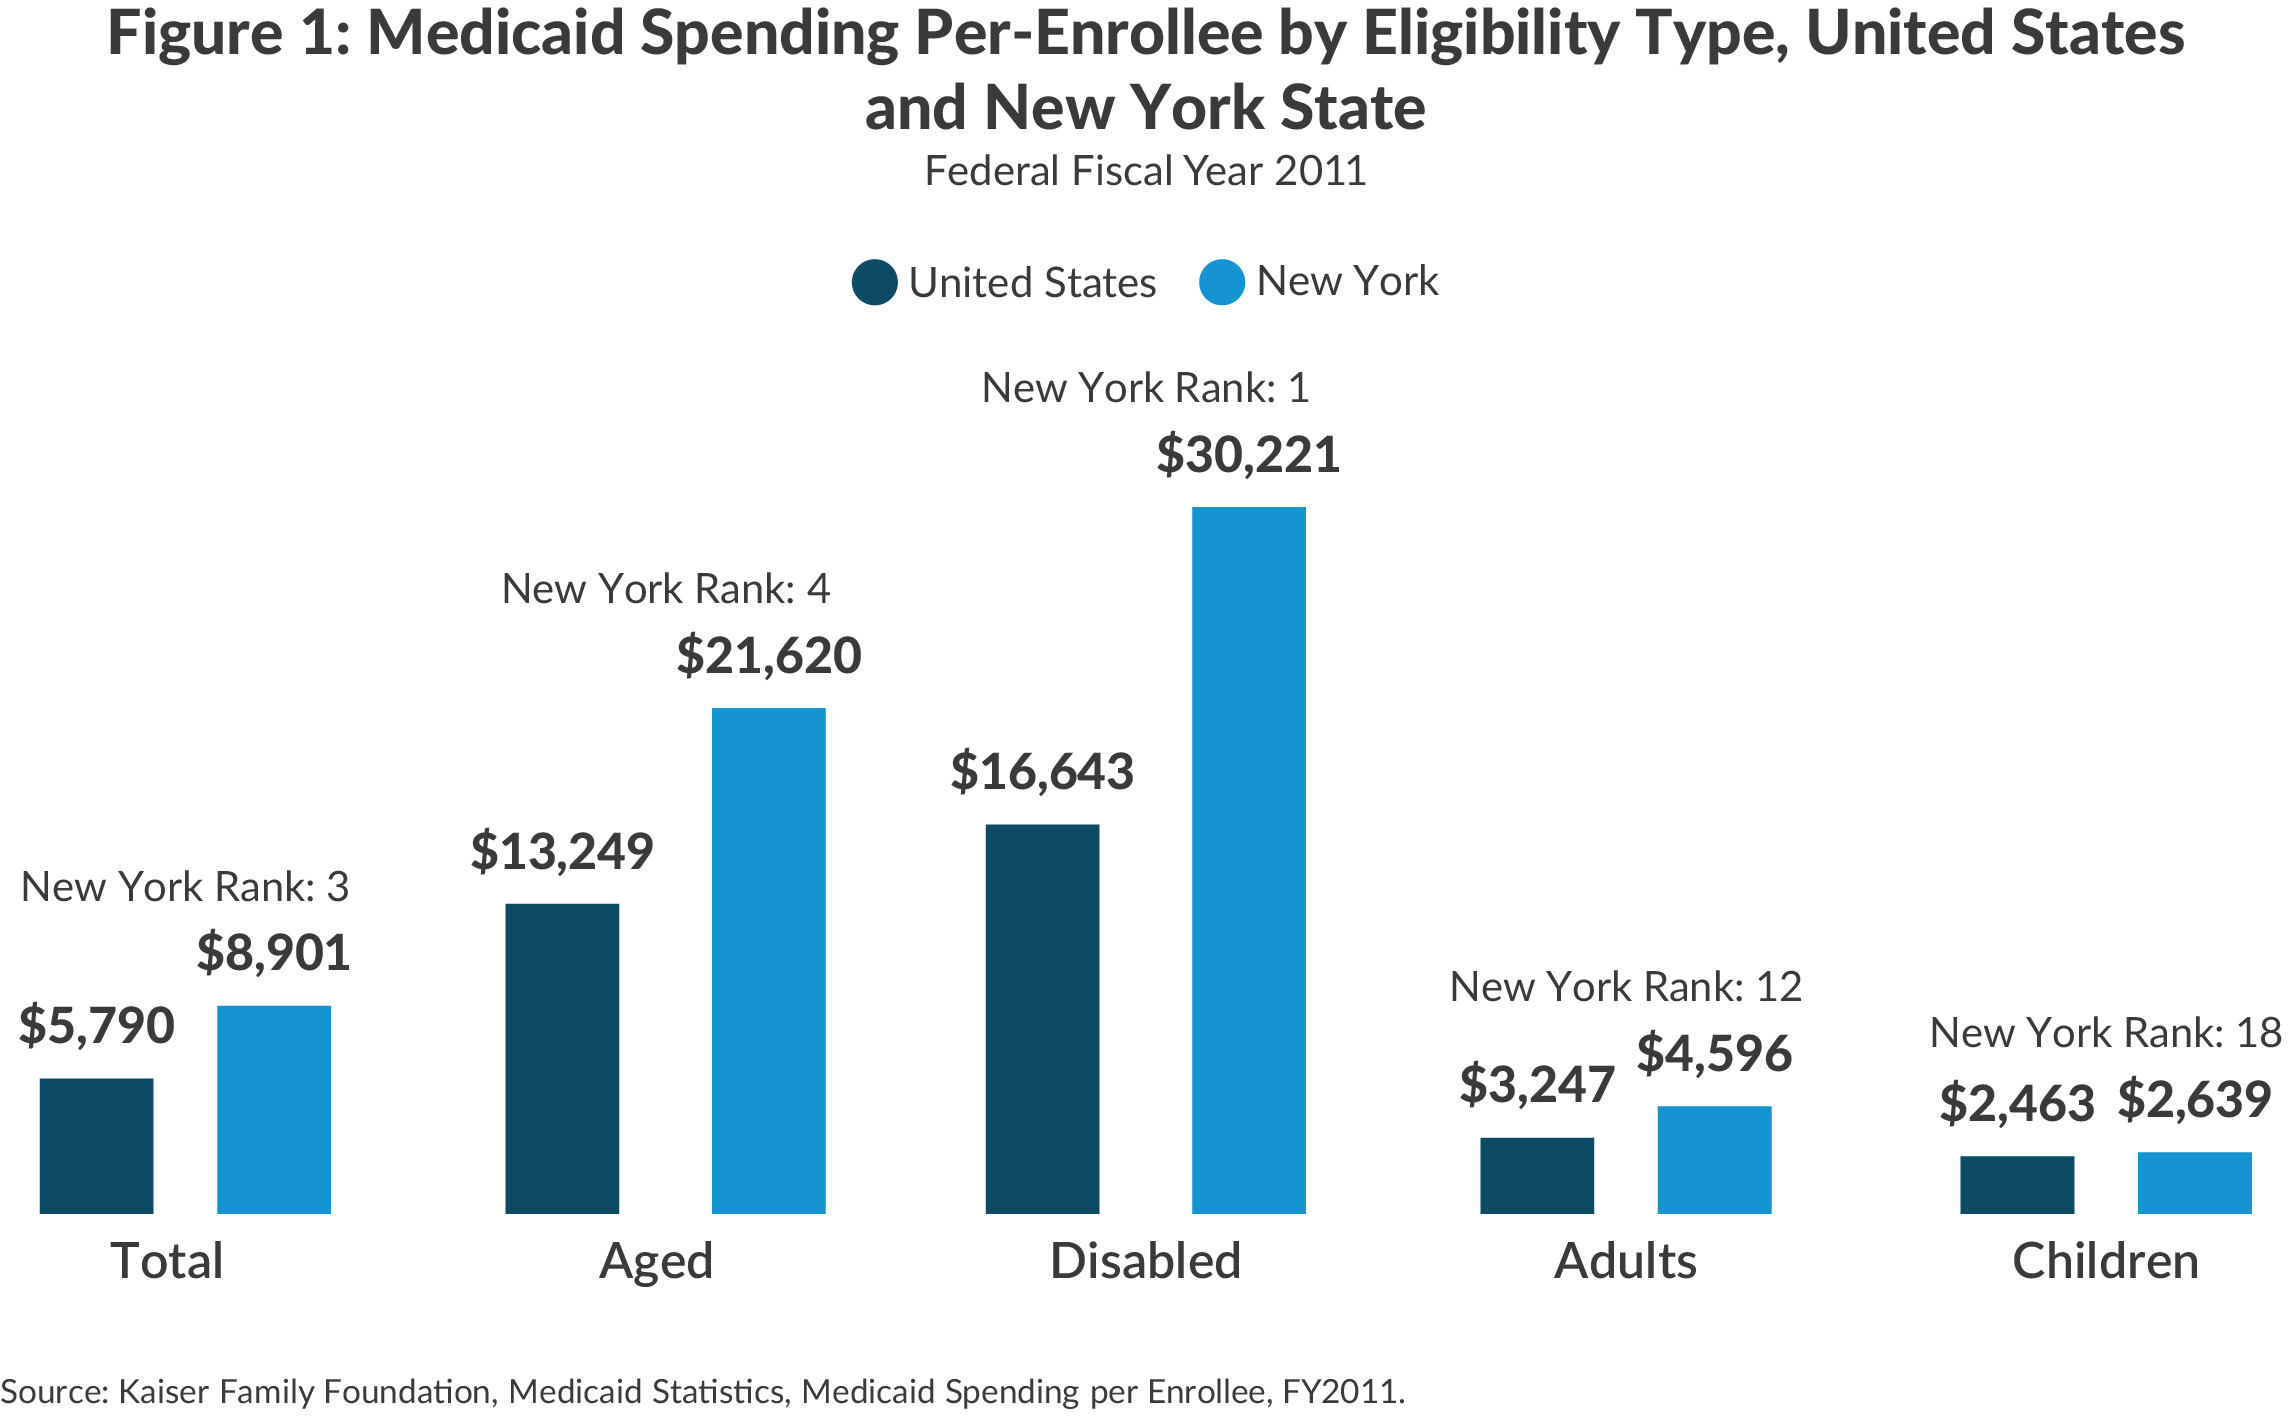 NY Medicaid spending per enrollee by eligibility type vs US